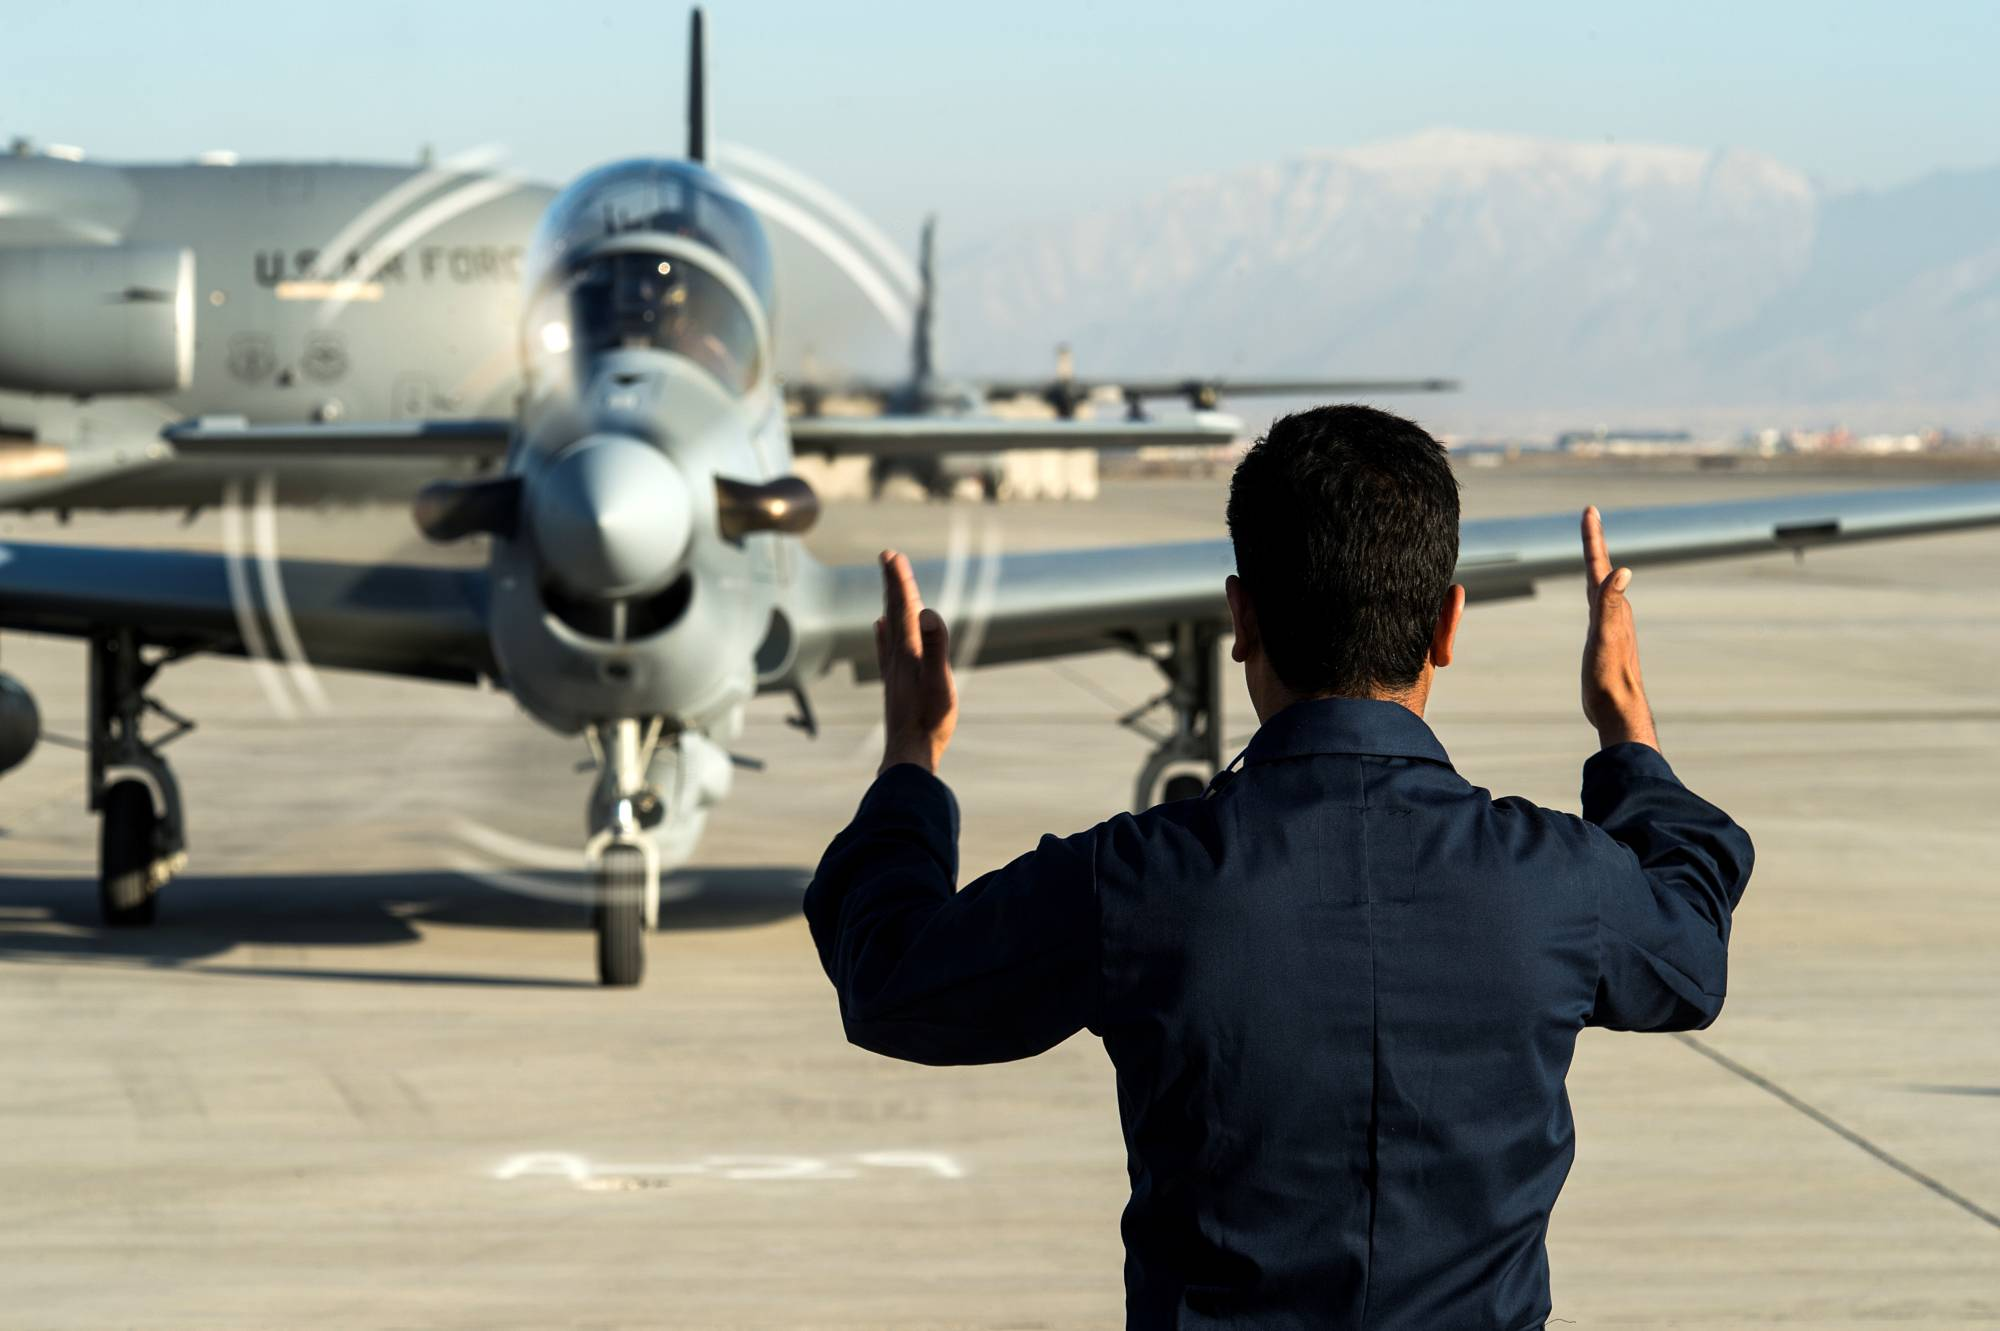 A member of the Afghan Air Force signals to an A-29 Super Tucano at Hamid Karzai International Airport near Kabul in January 2016.   U.S. AIR FORCE / VIA REUTERS